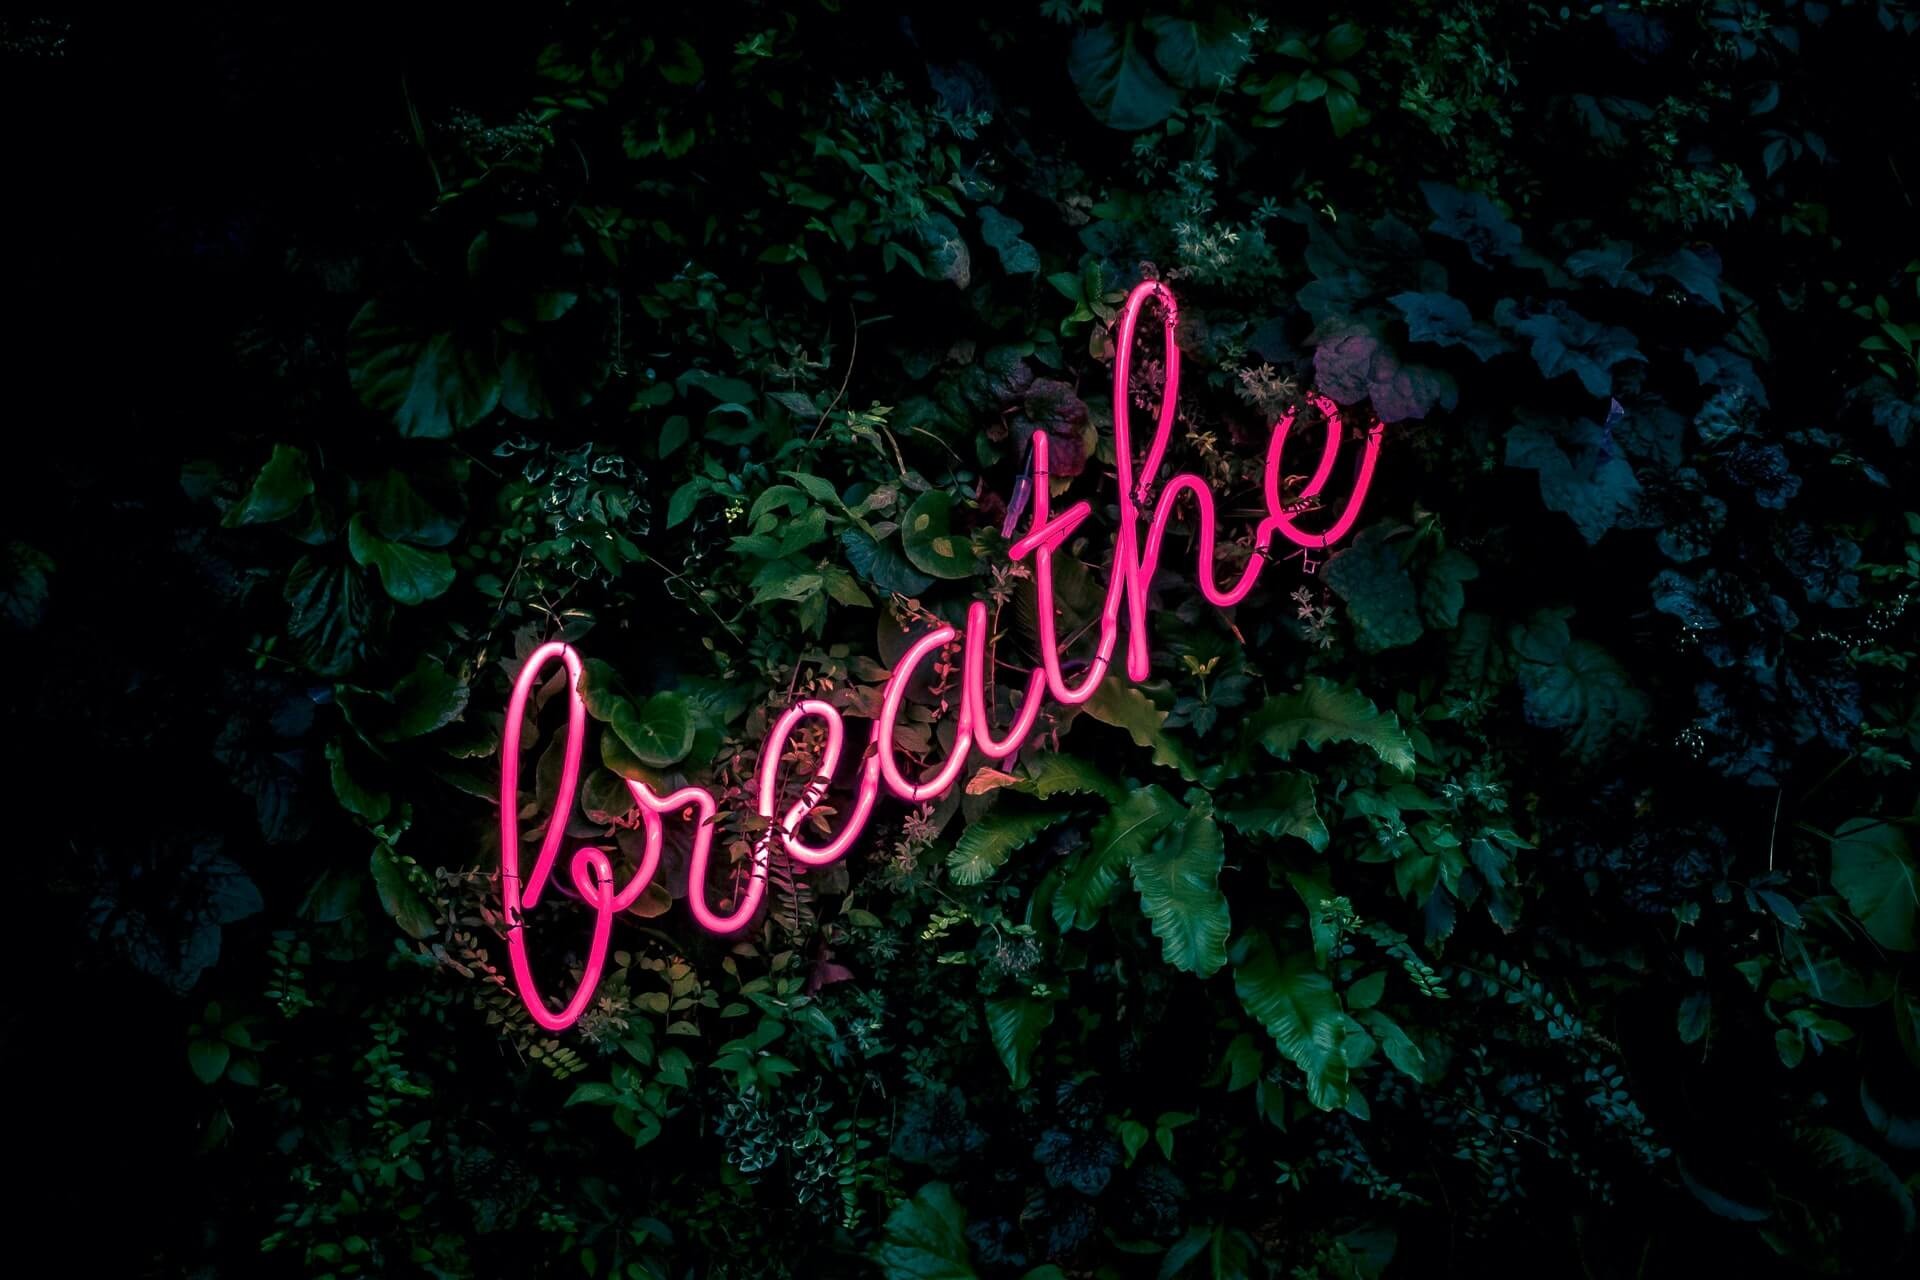 breathe in neon lights on foliage background